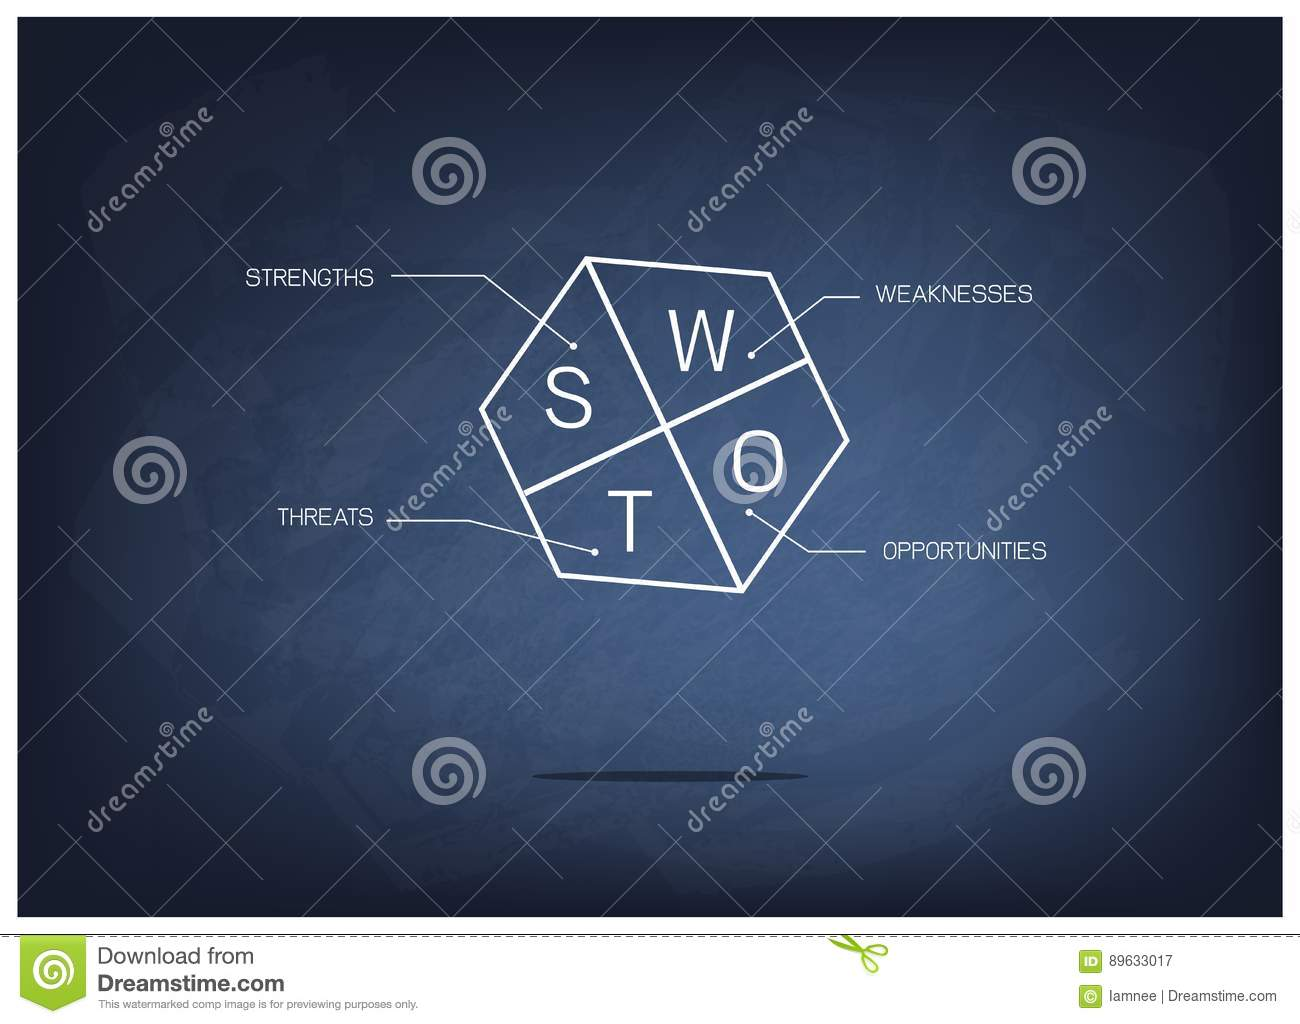 swot analysis method management for business plan stock vector swot analysis method management for business plan